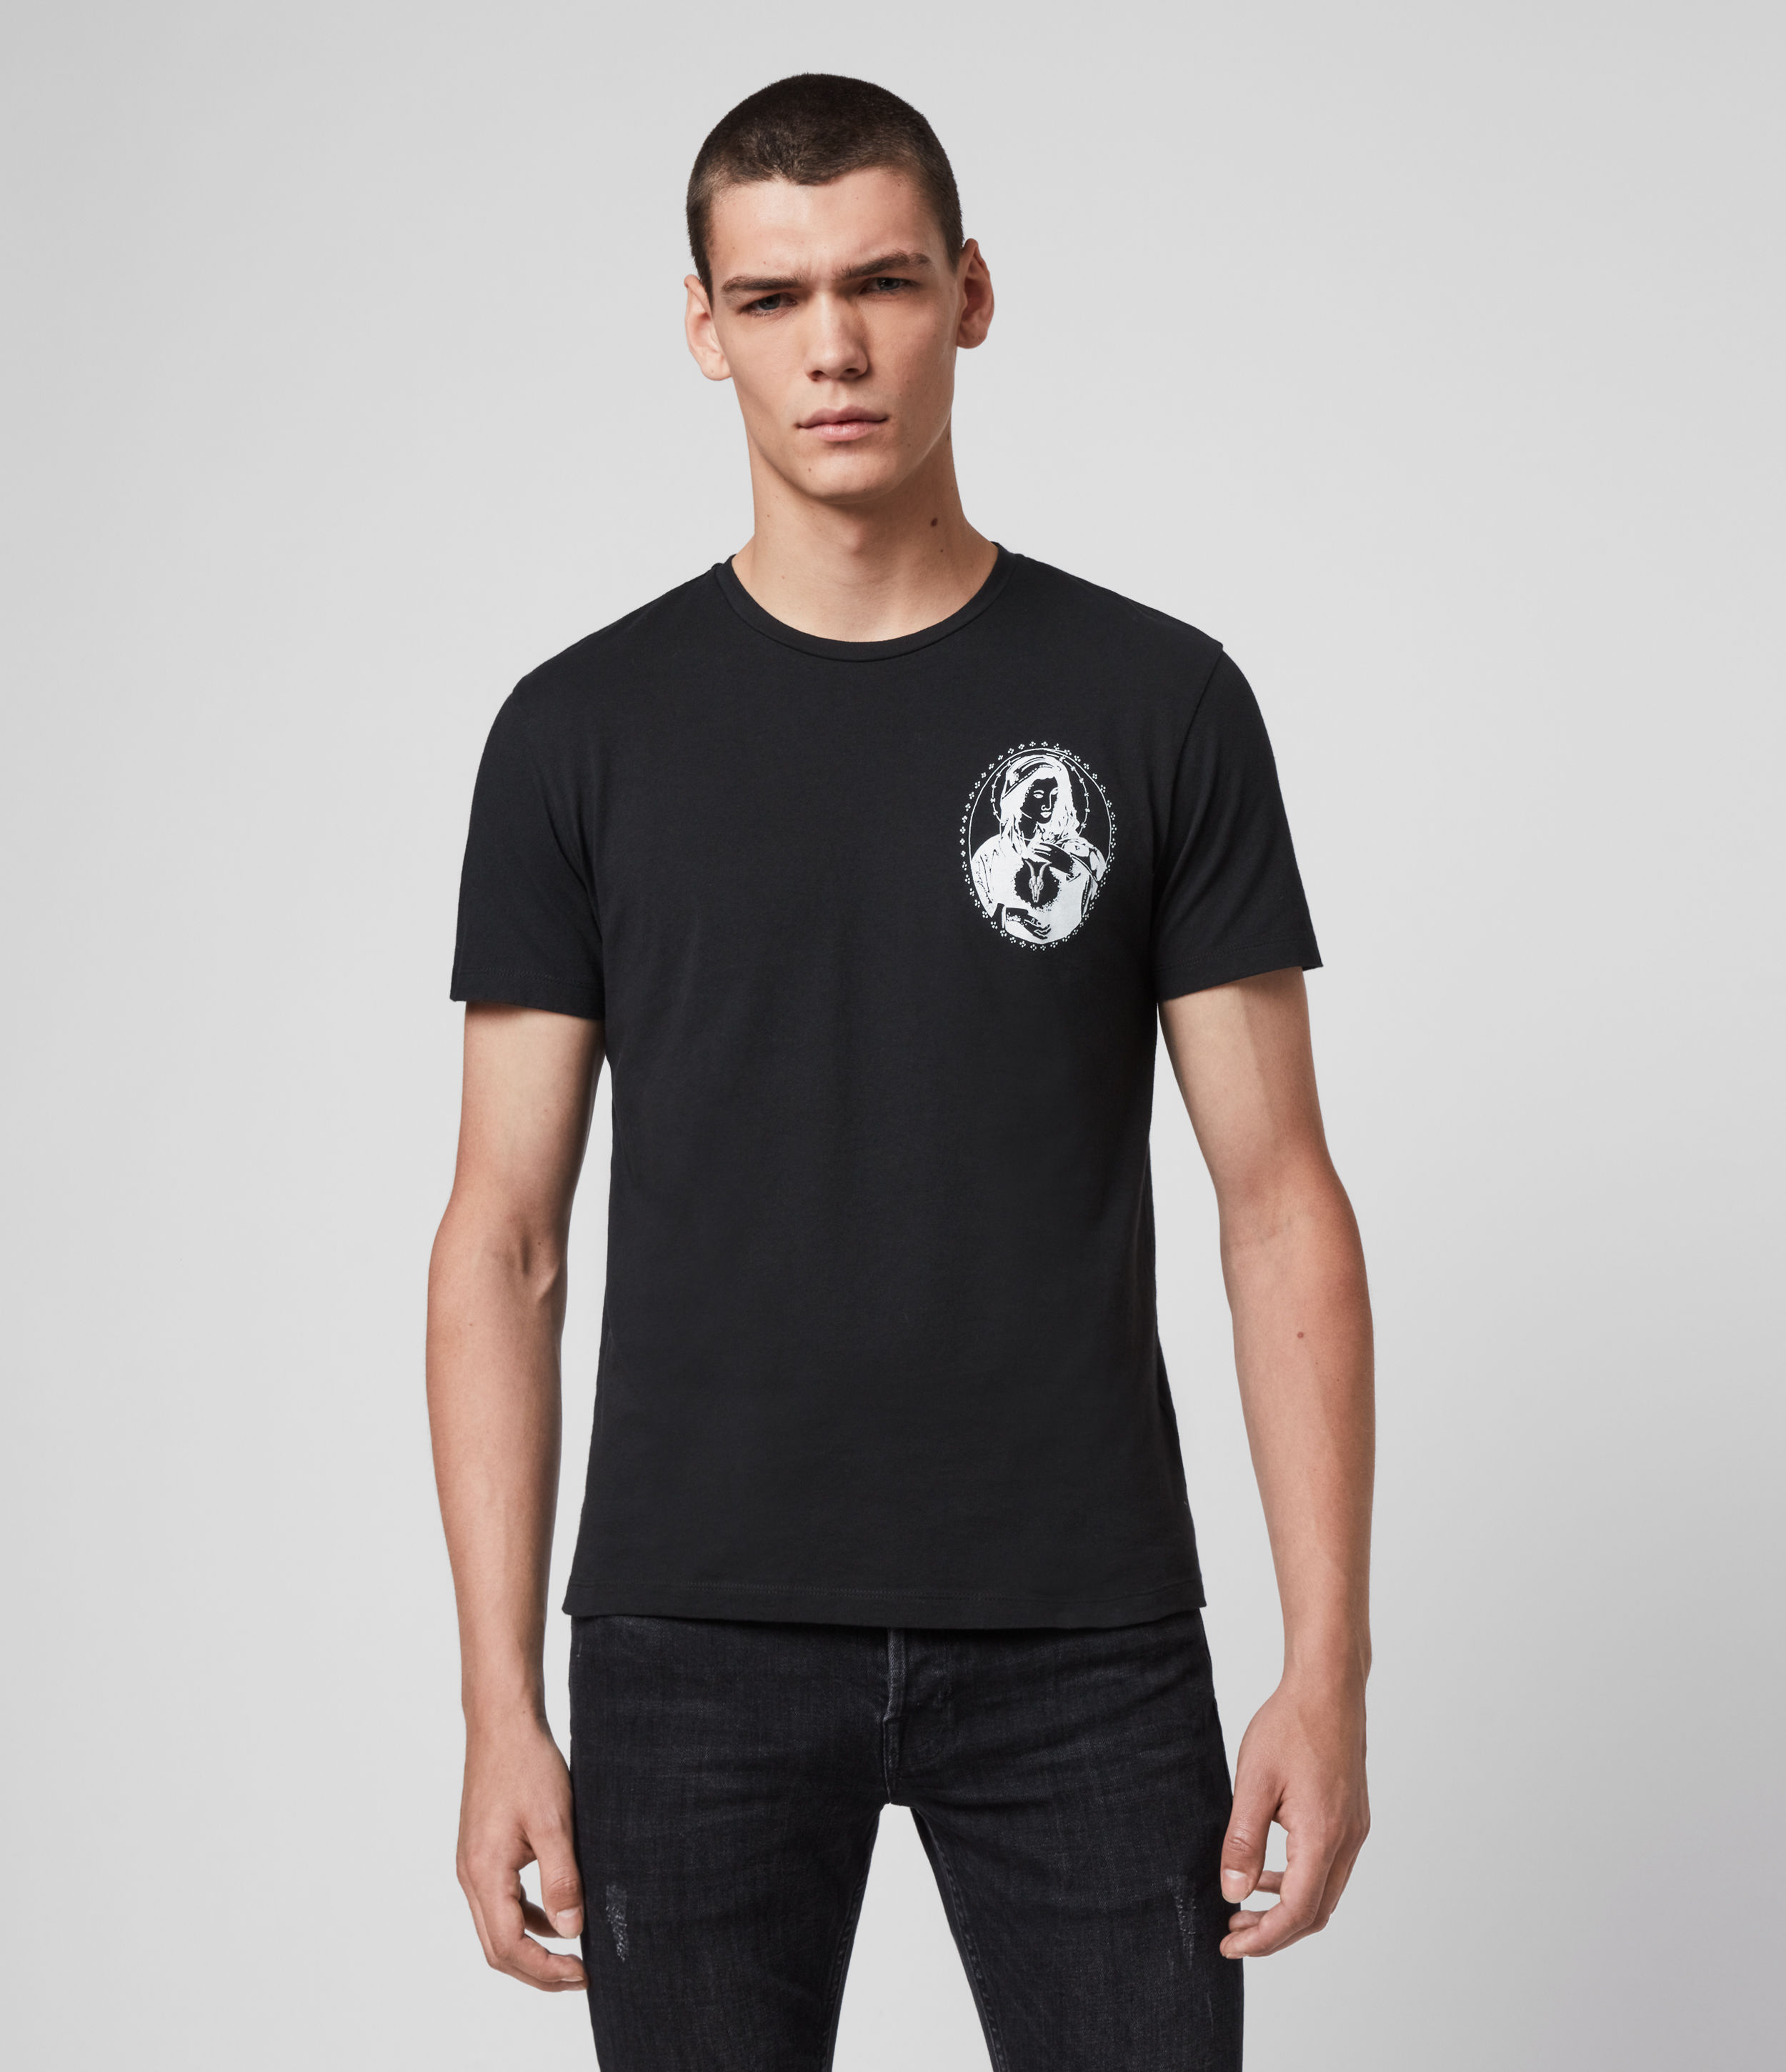 AllSaints Mother Crew T-Shirt